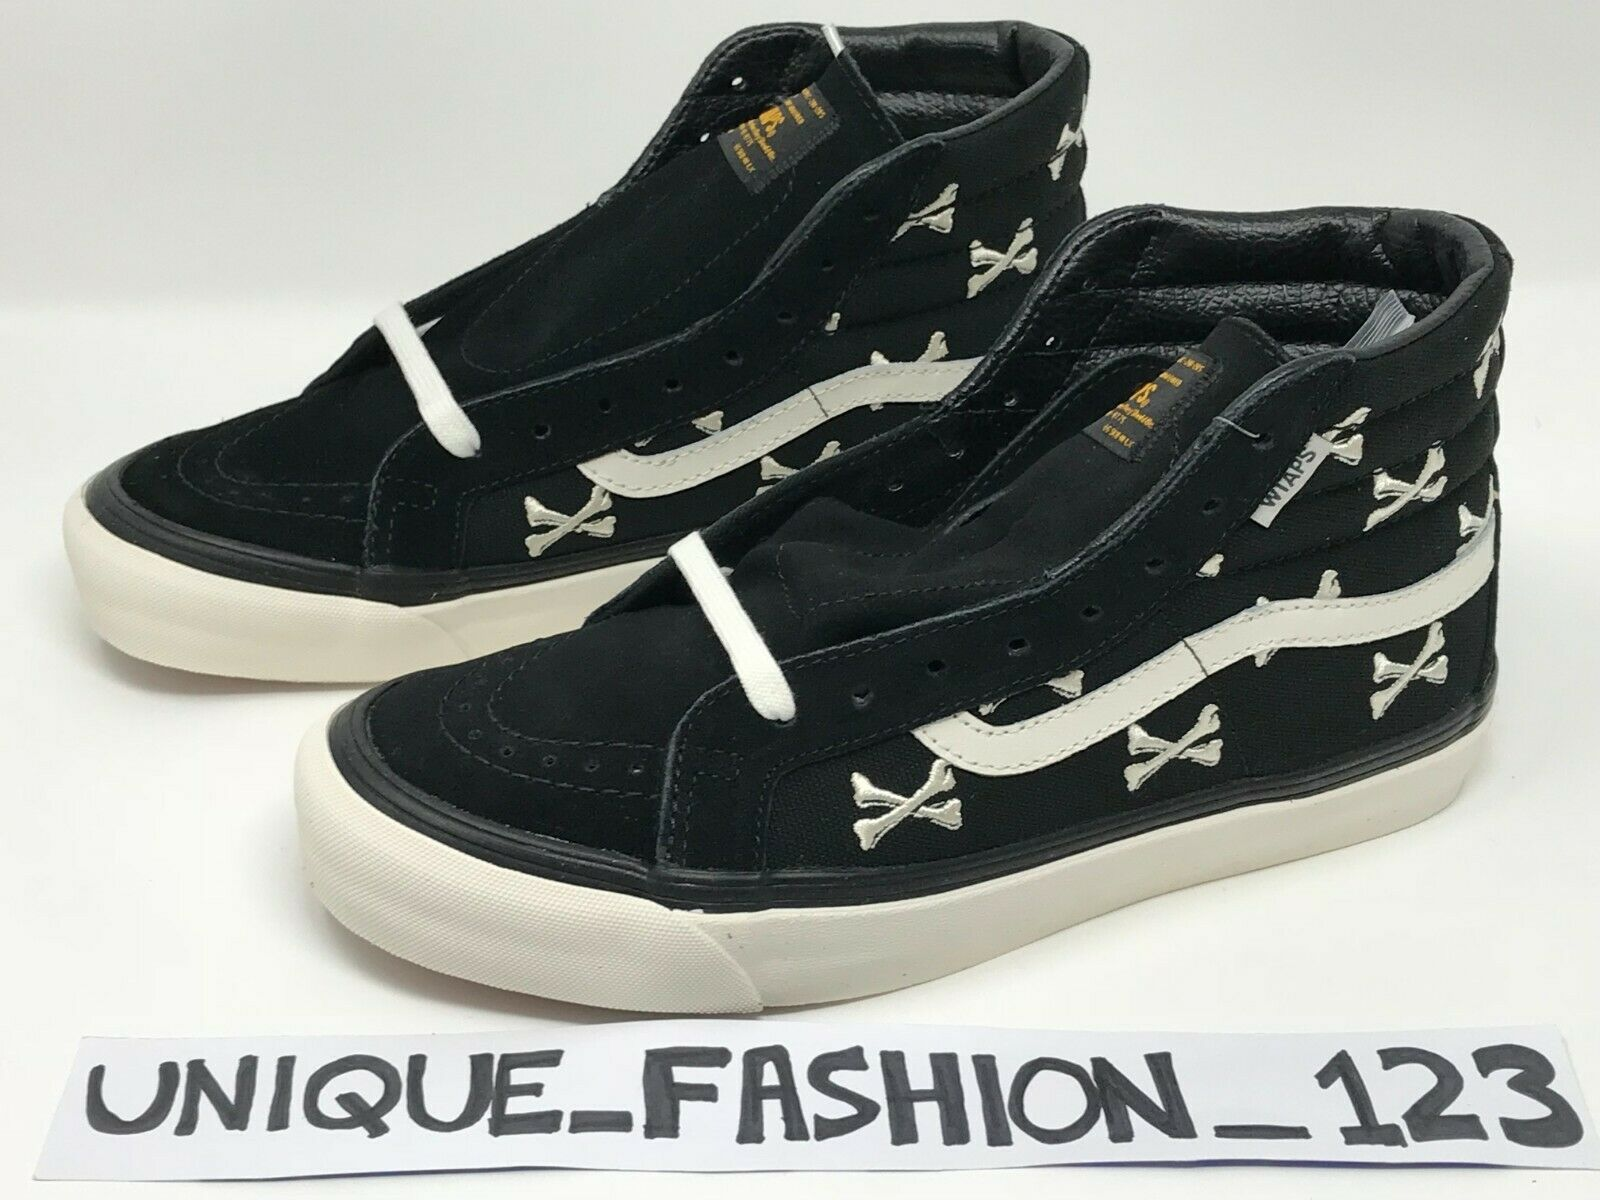 VANS WTAPS BONES OG SK8 HI LX US 10.5 UK 9.5 44 BLACK WHITE WHISP 2016 VAULT